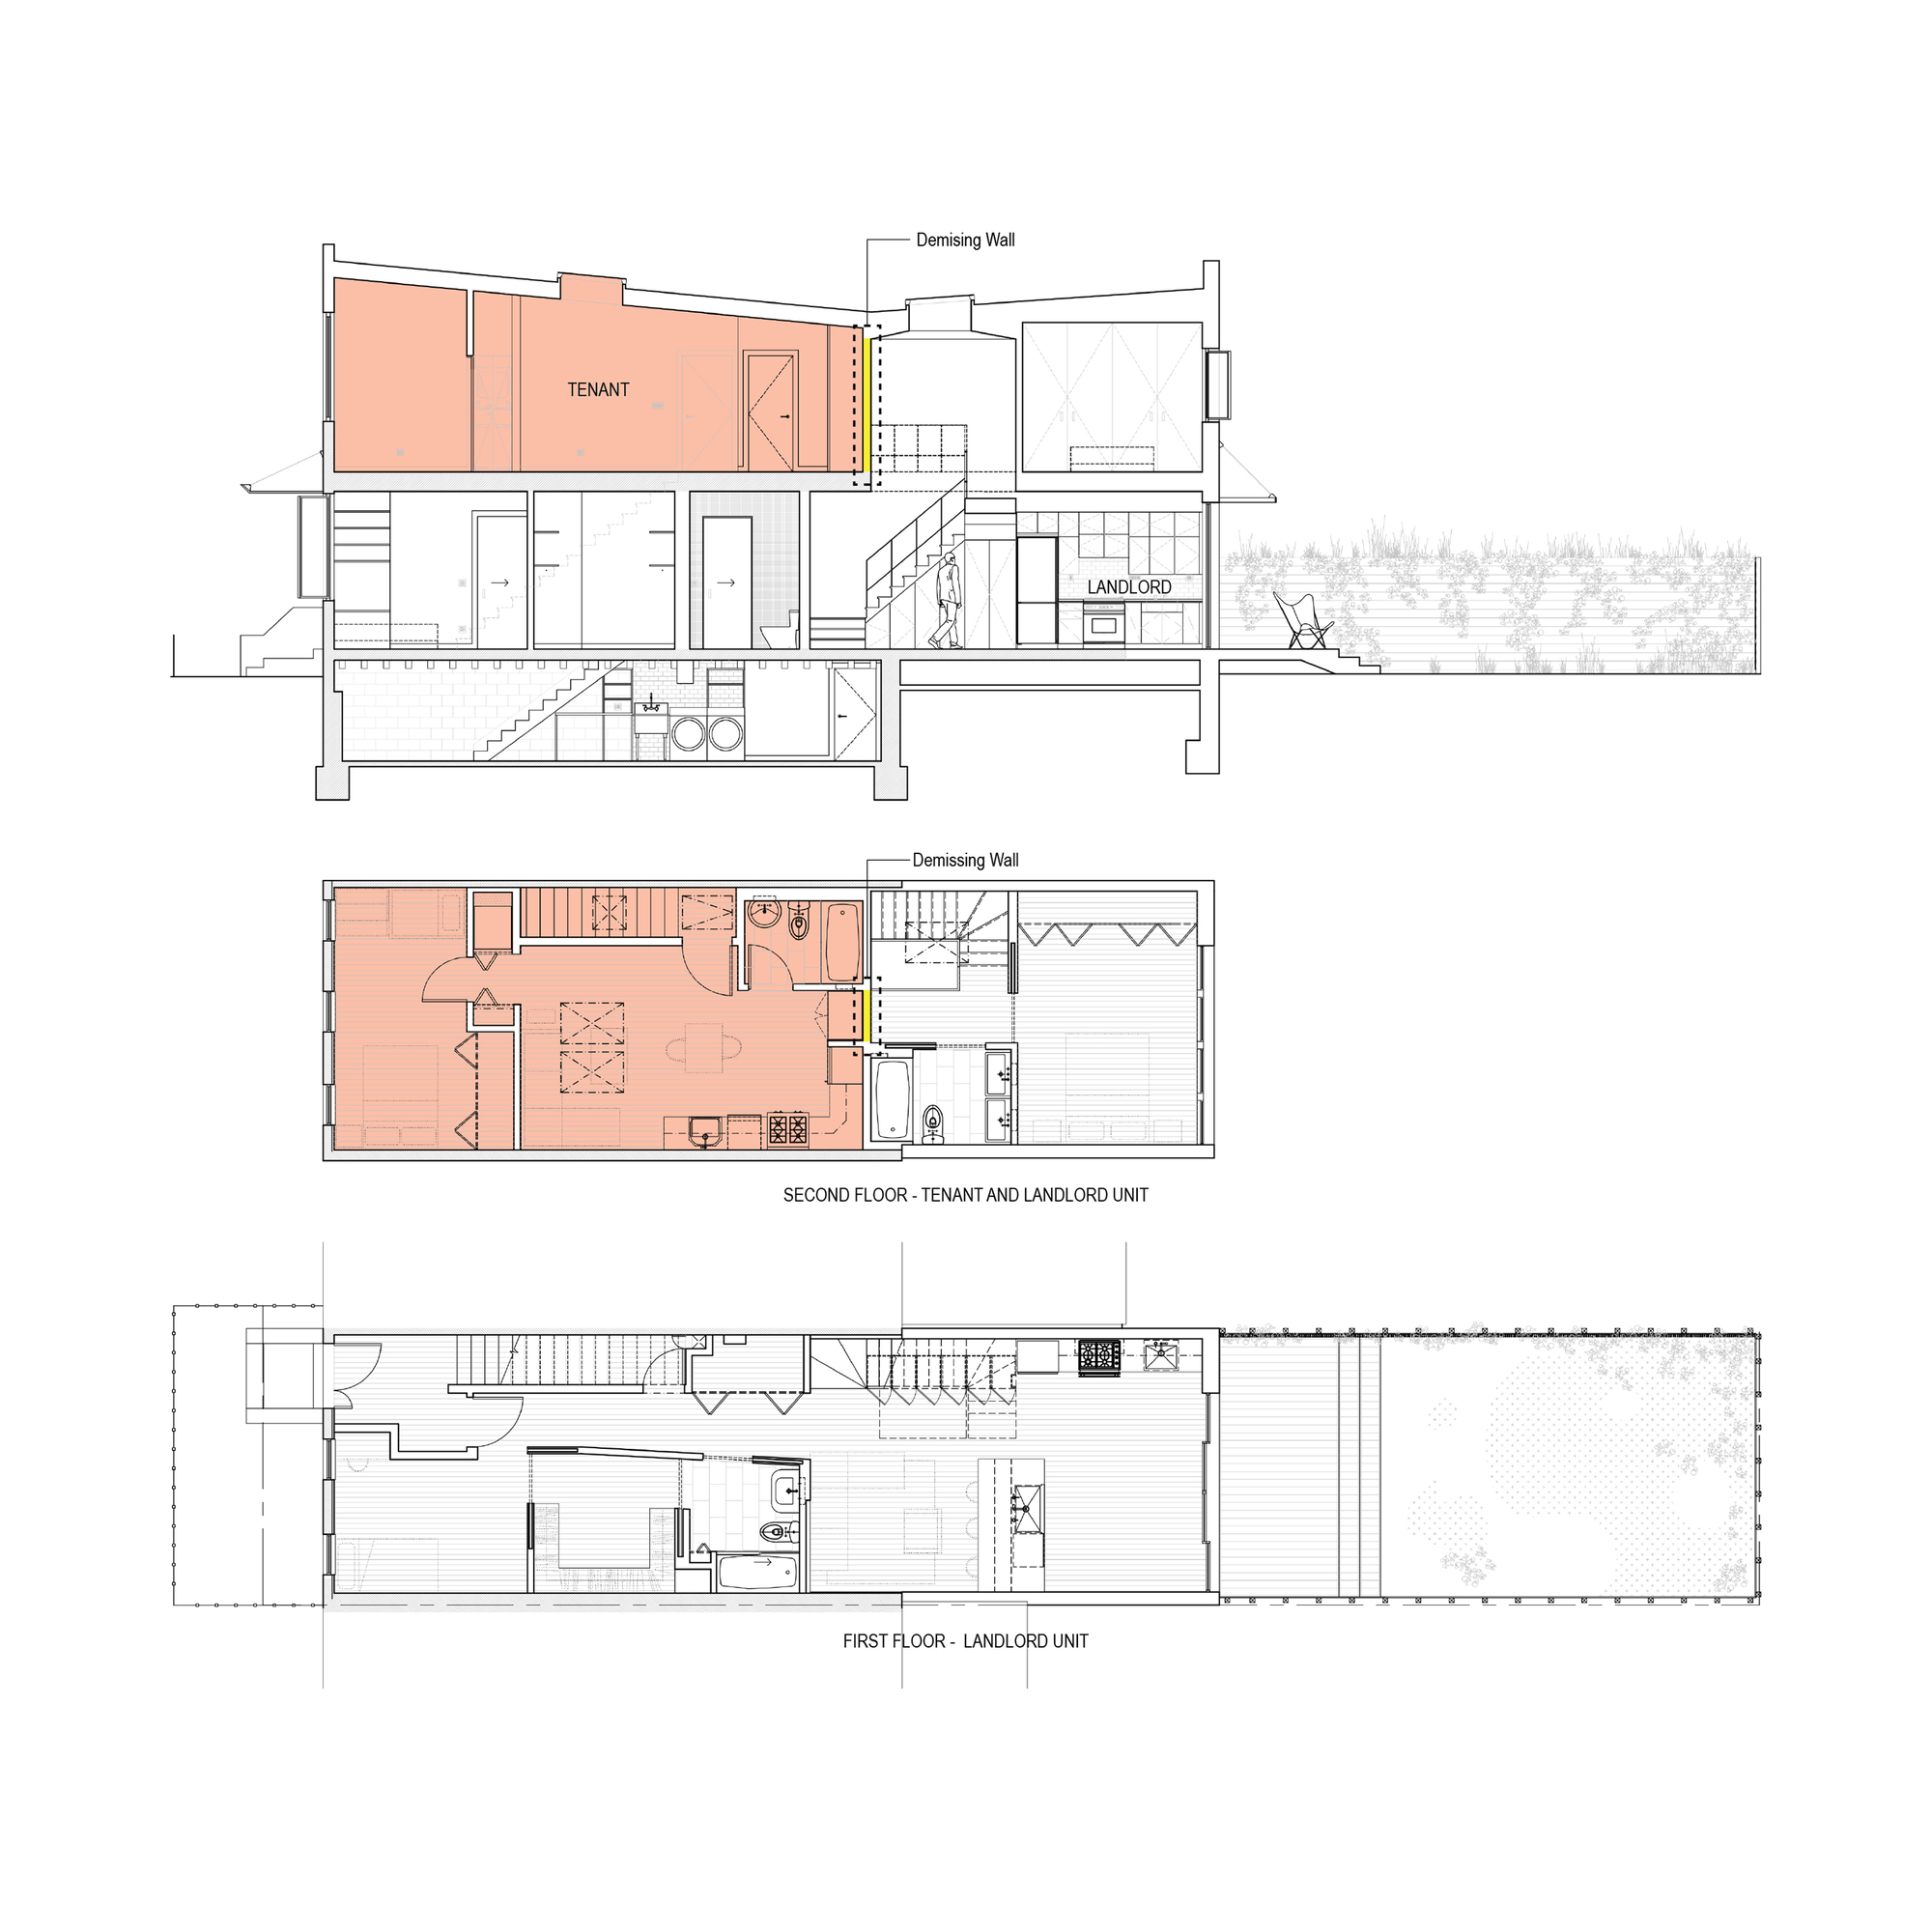 54f797e2e58ece08b40001c9_brooklyn-row-house-office-of-architecture_section_-1-